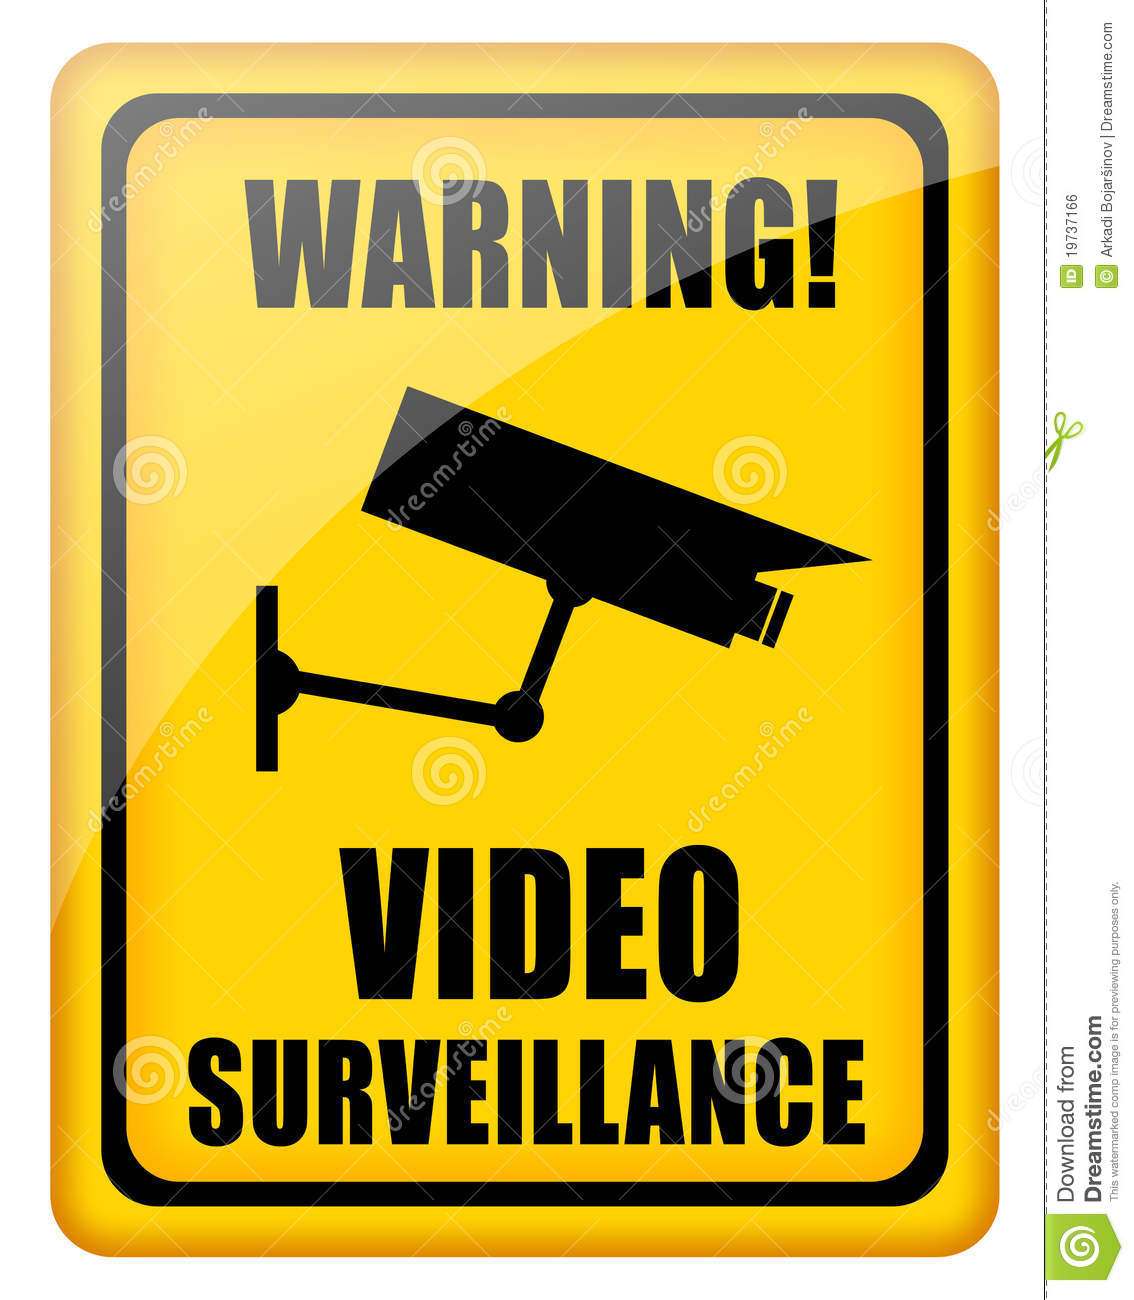 Video Surveillance Sign Royalty Free Stock Image - Image: 19737166